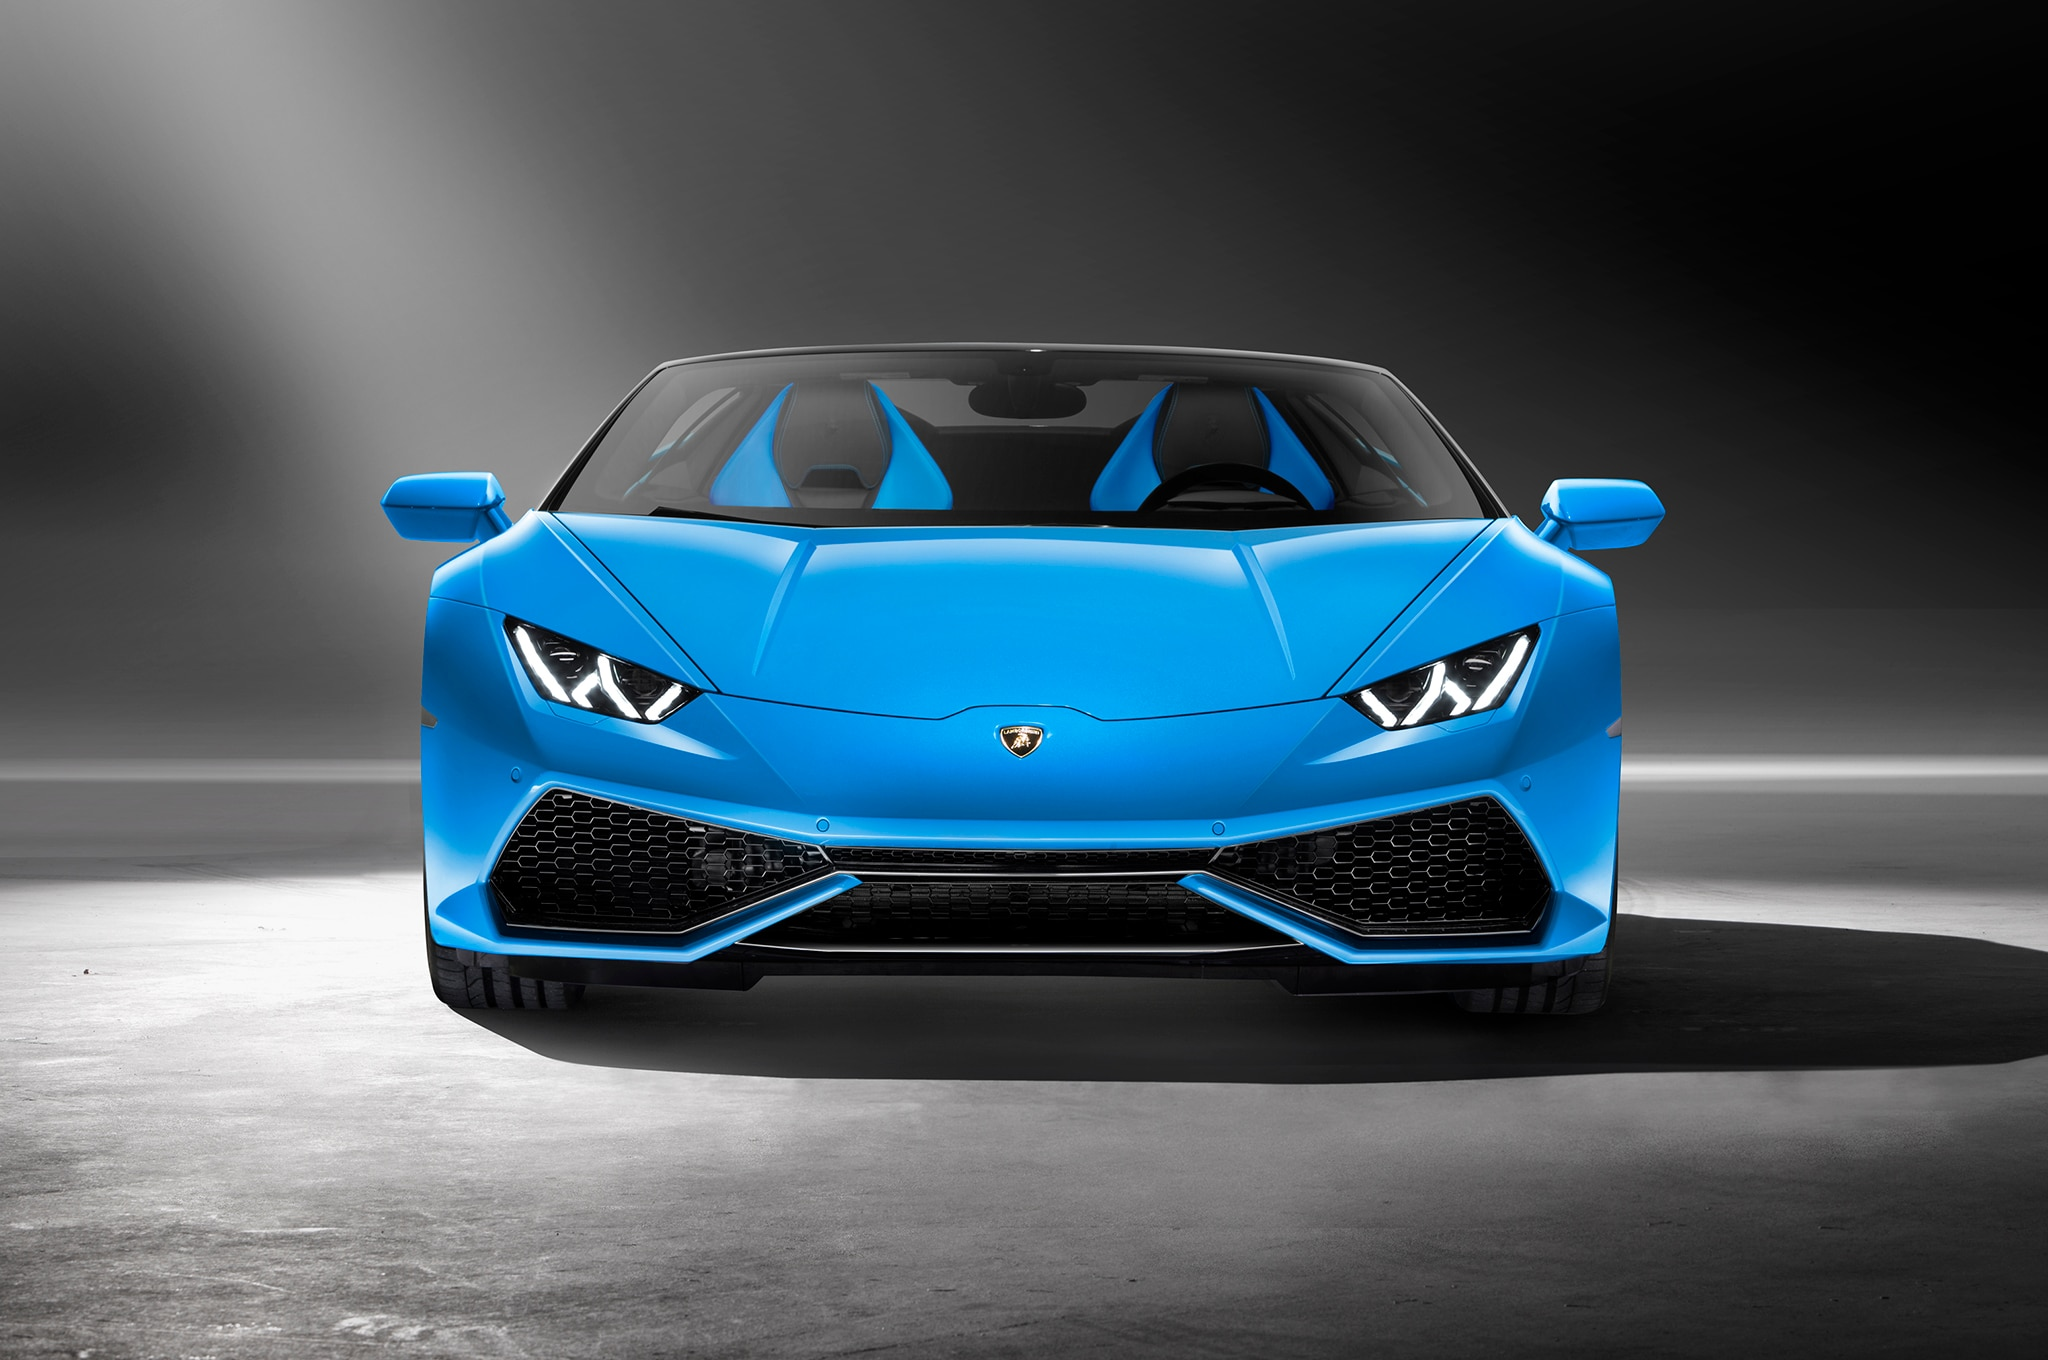 lamborghini huracan front 28 images 2015 lamborghini huracan front three quarters 02 photo 8. Black Bedroom Furniture Sets. Home Design Ideas